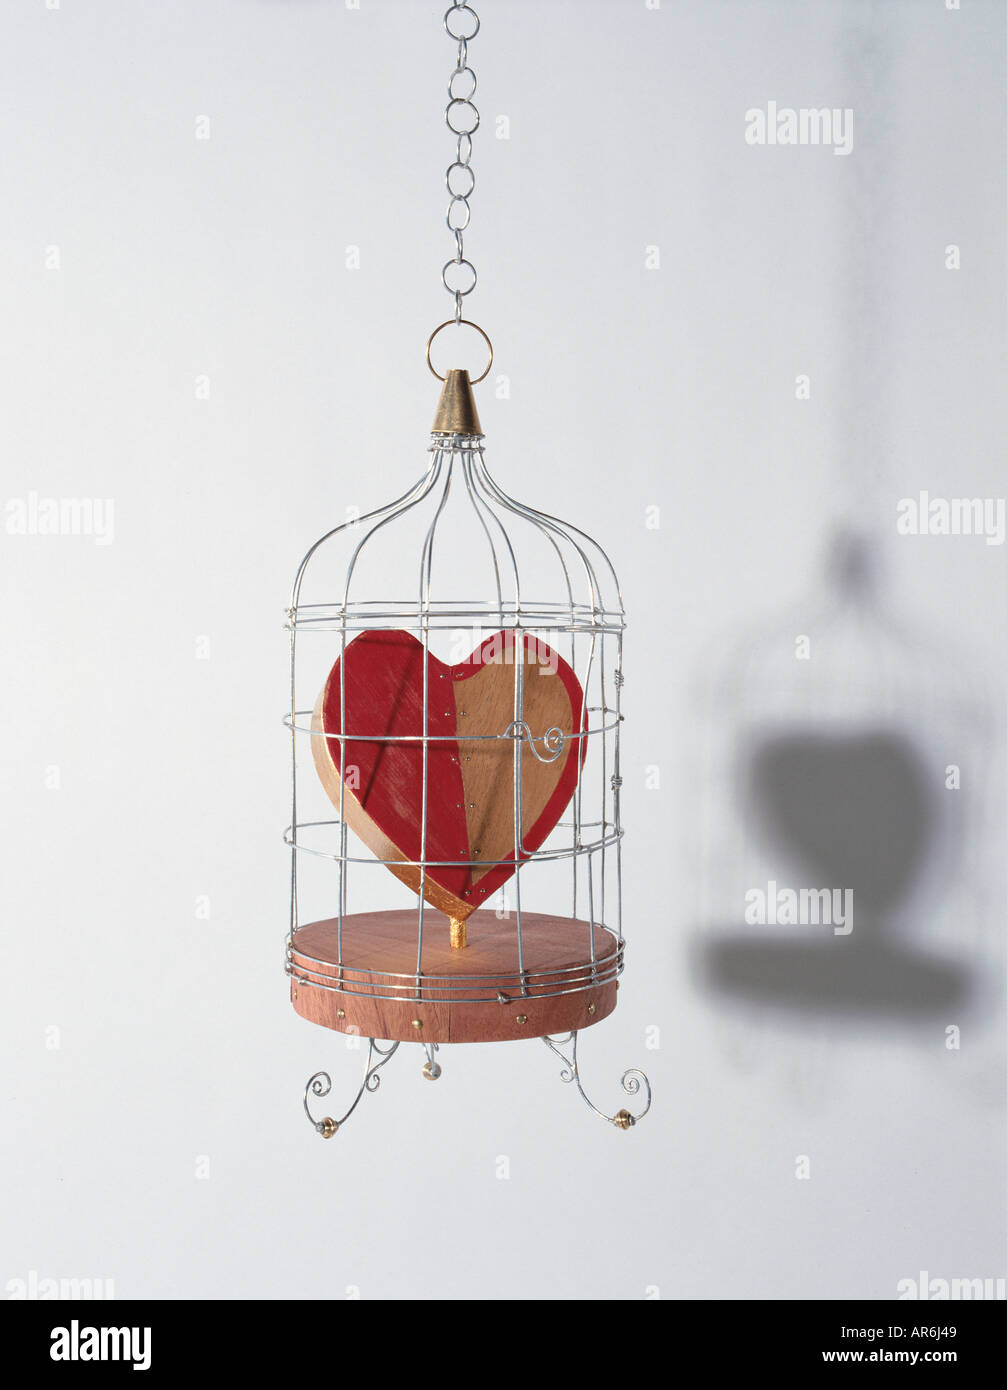 Wooden love heart hanging trapped in a metal birdcage, heart painted half red, solid wooden base - Stock Image